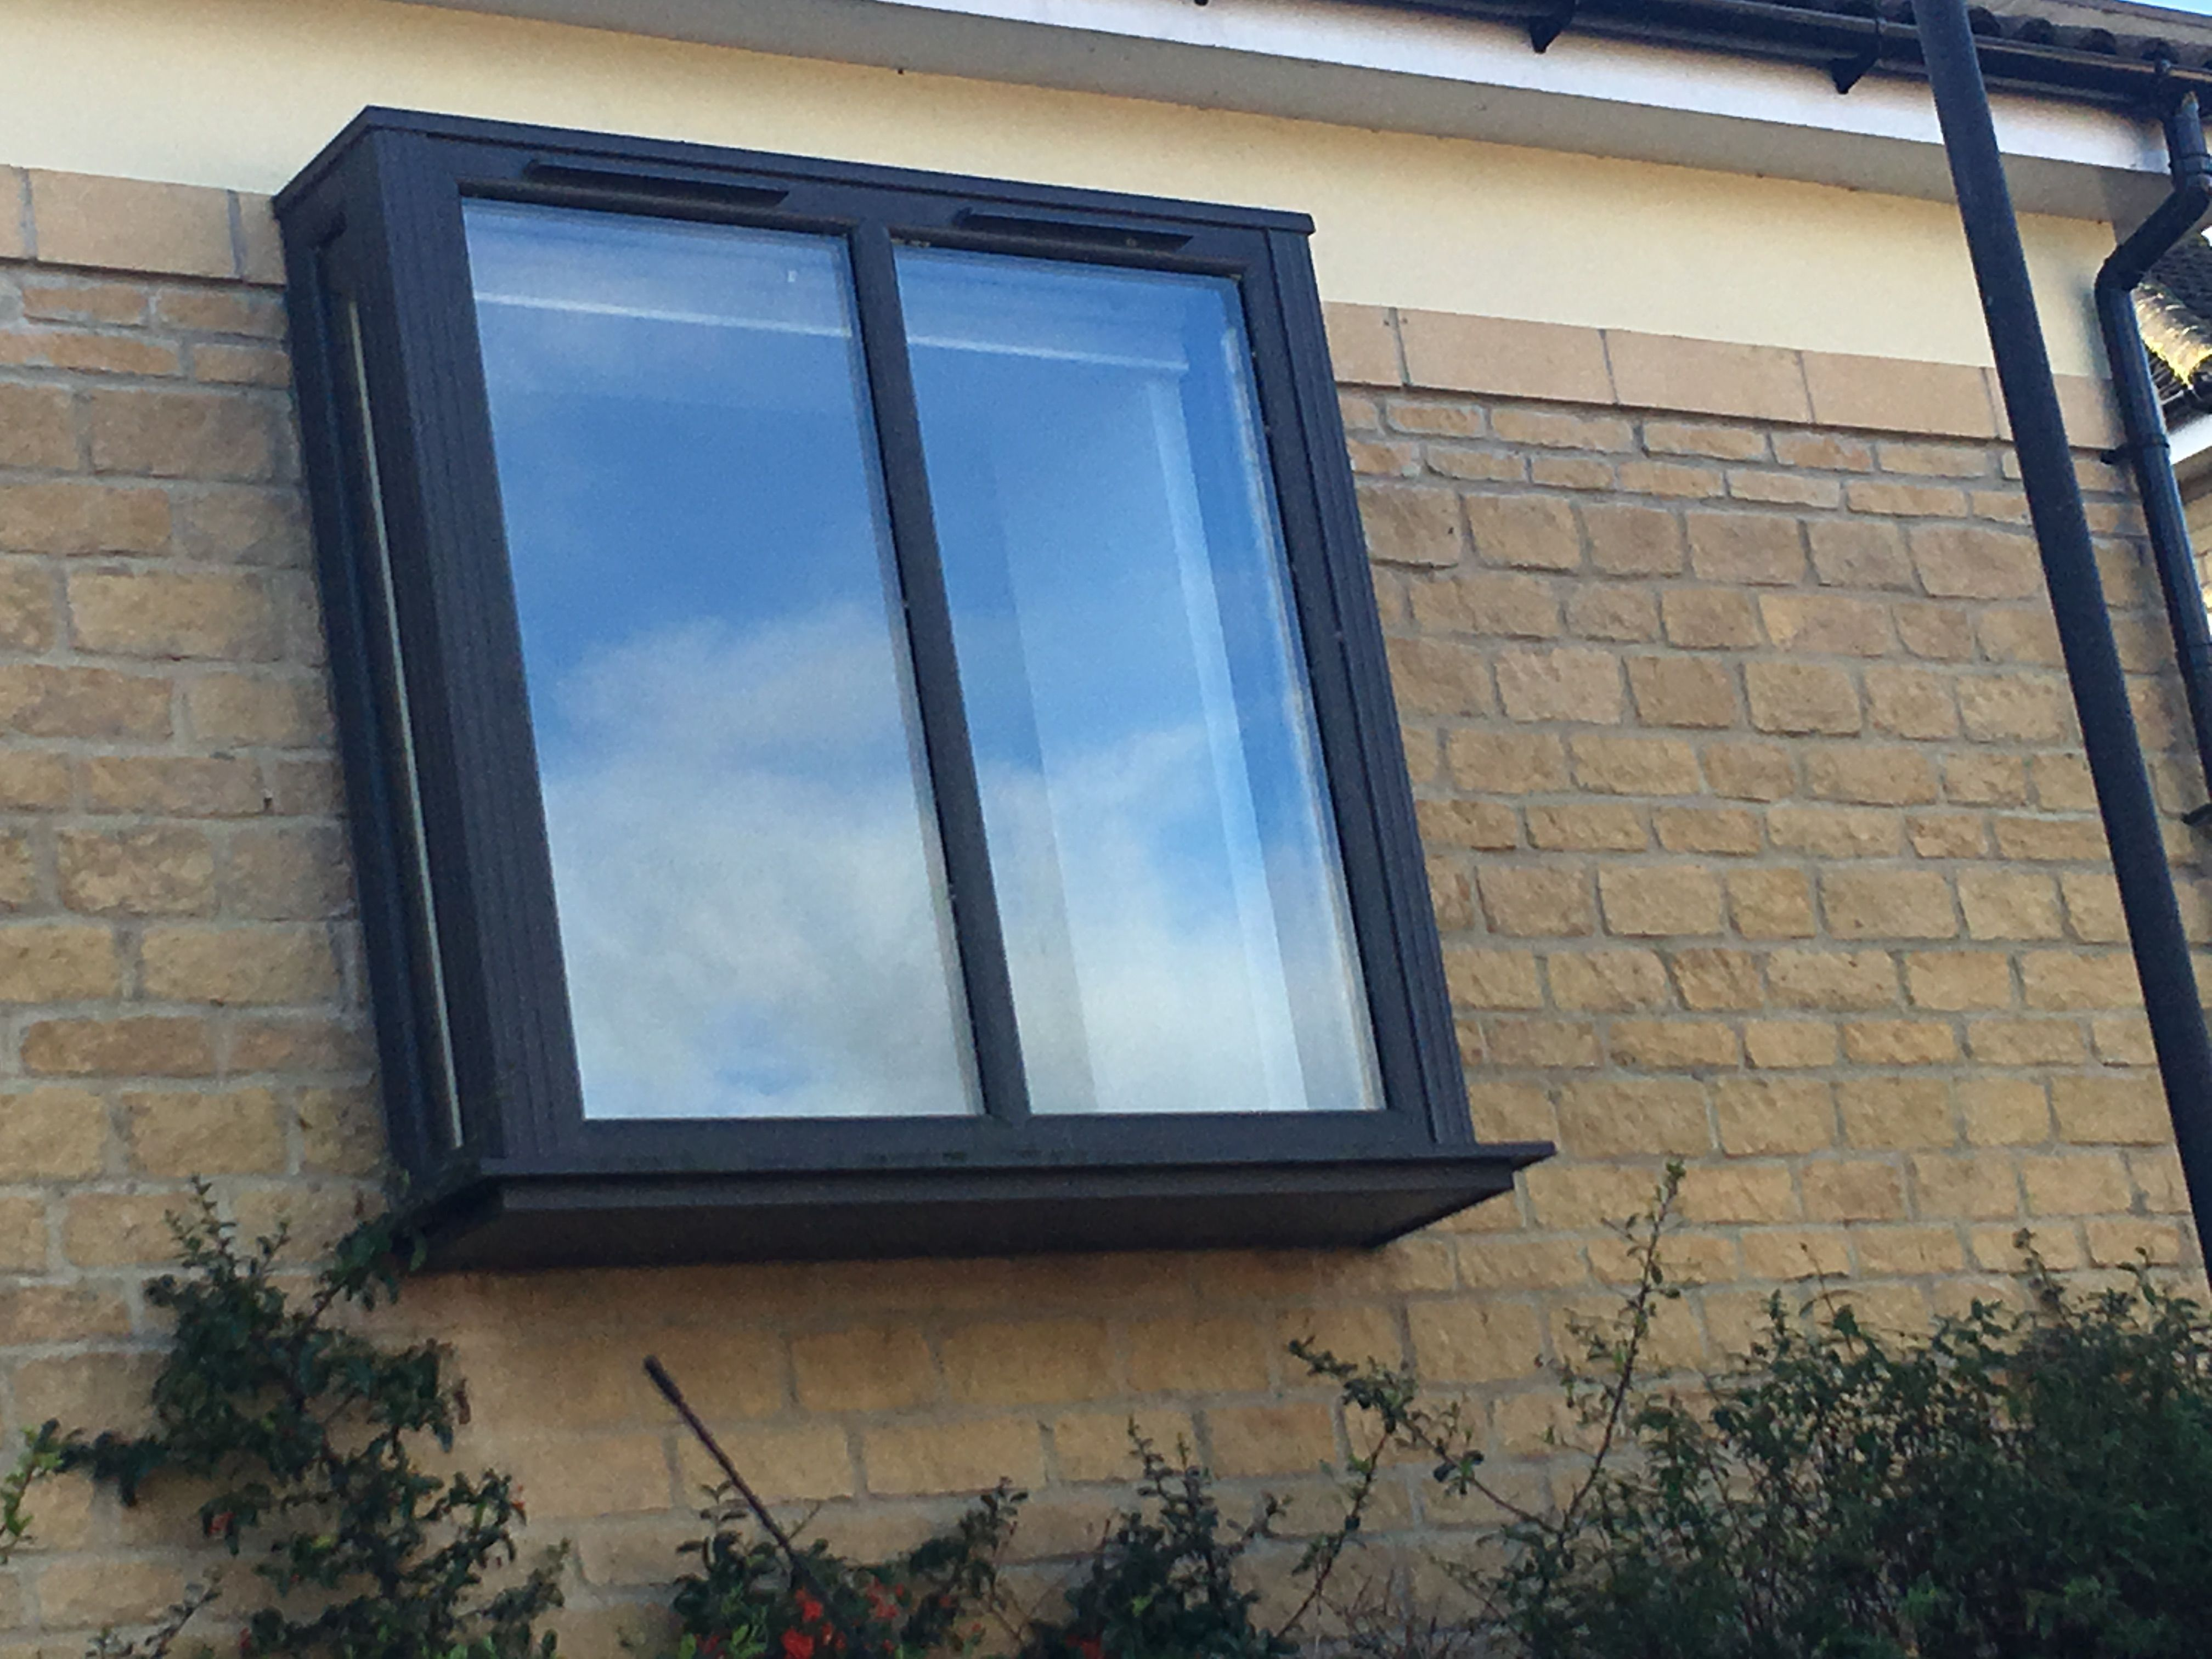 Pin by Crystal Clear Bristol on Aluminium windows | Pinterest